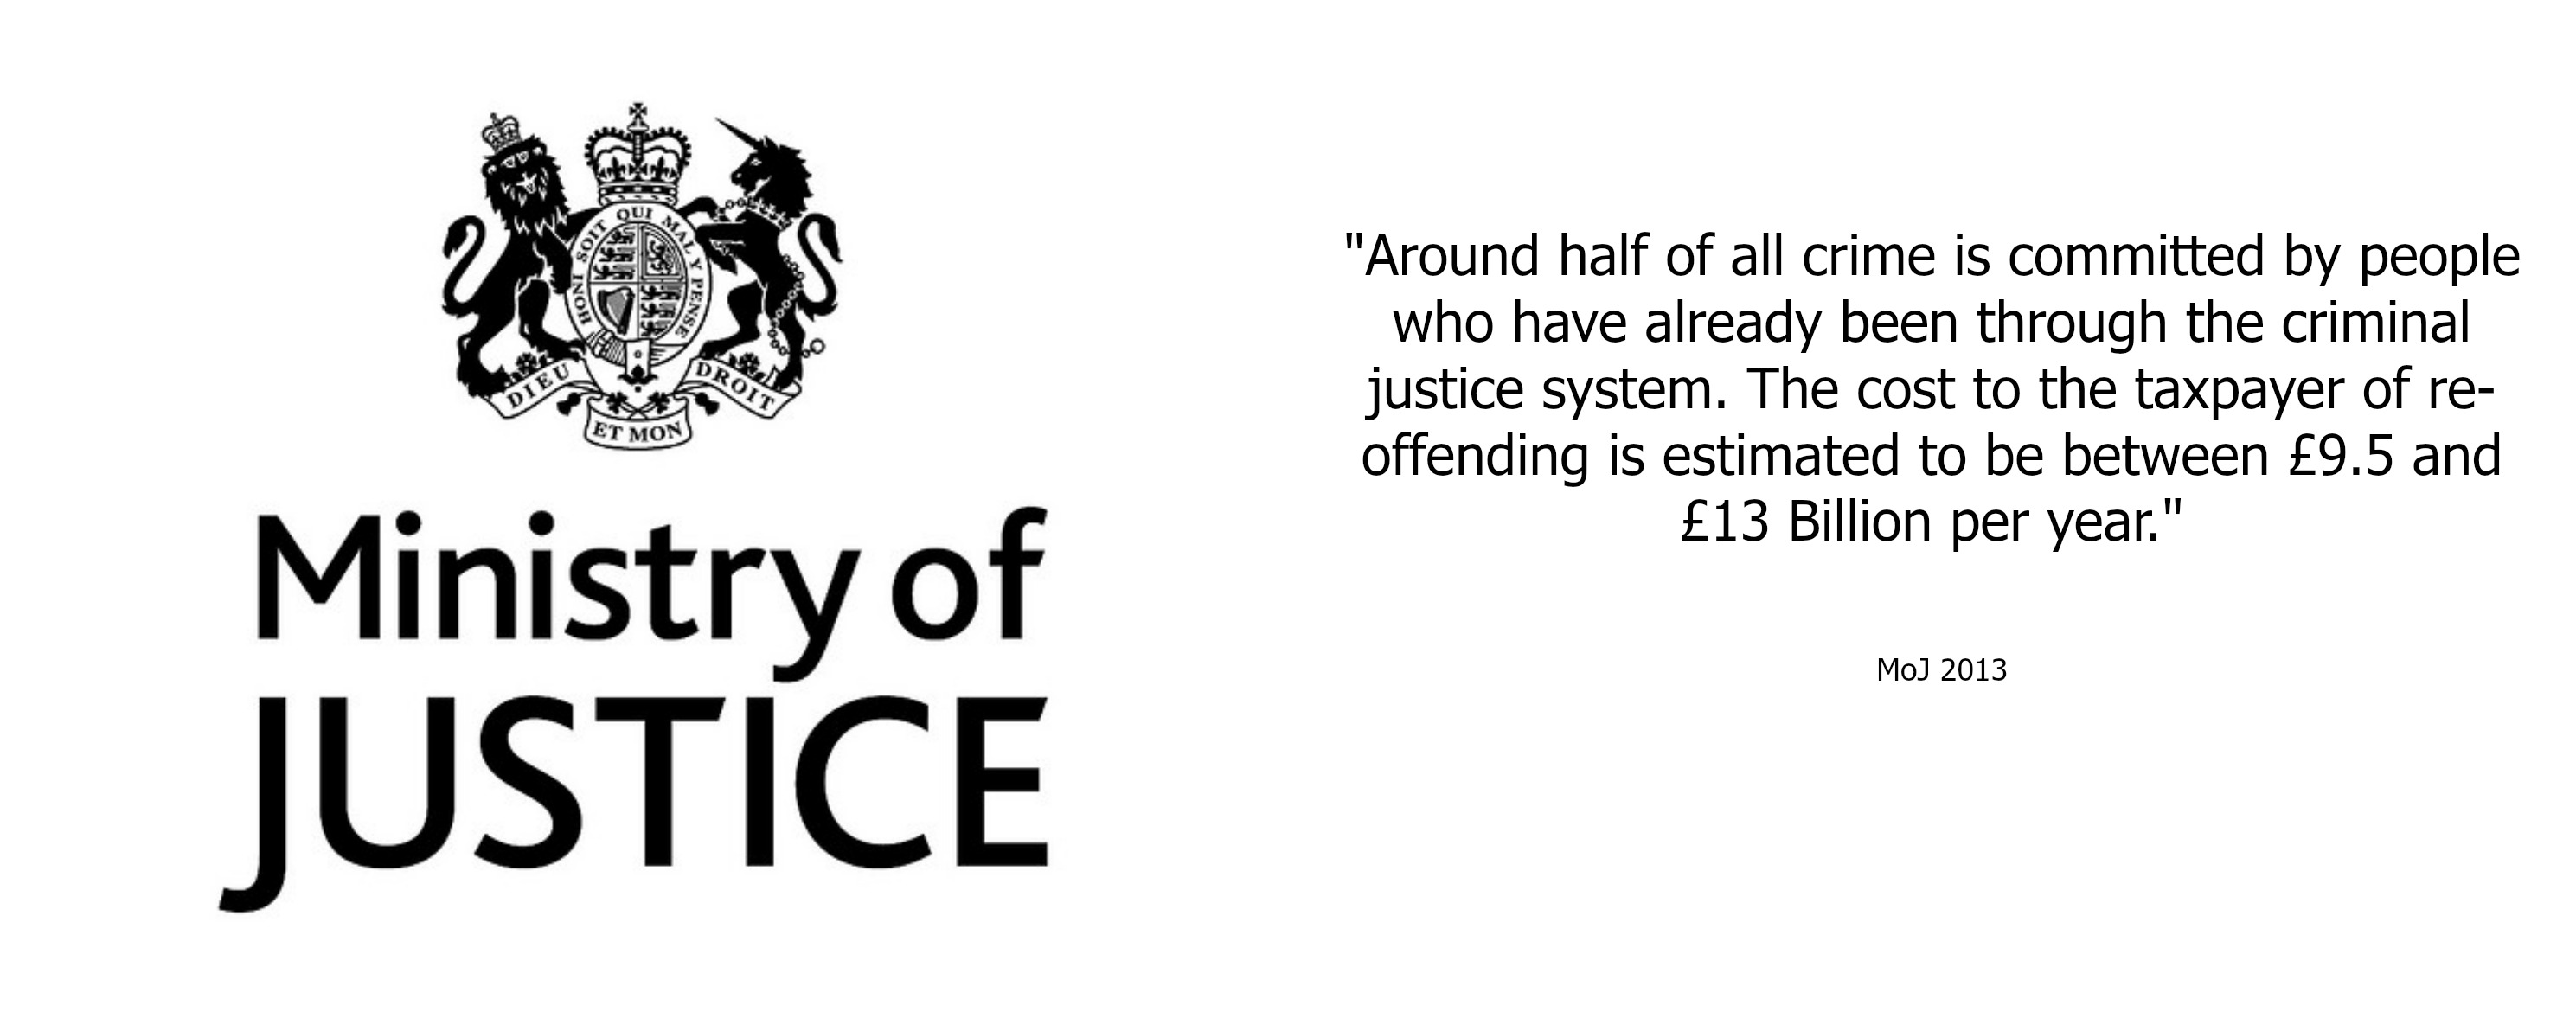 access2advice, Ministry of Justice Logo